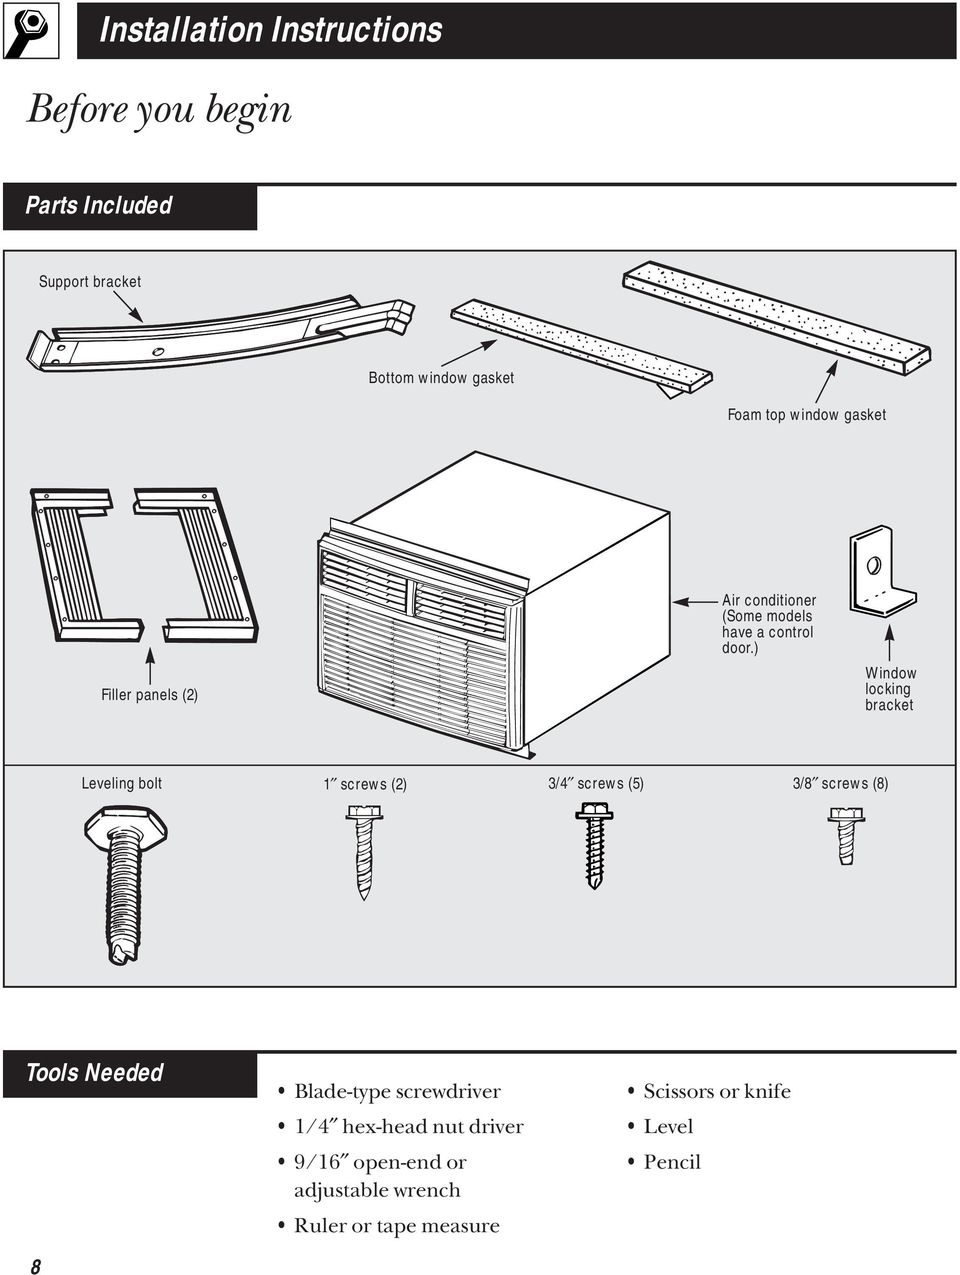 ) Window locking bracket Leveling bolt 1 screws (2) 3/4 screws (5) 3/8 screws (8) Tools Needed 8